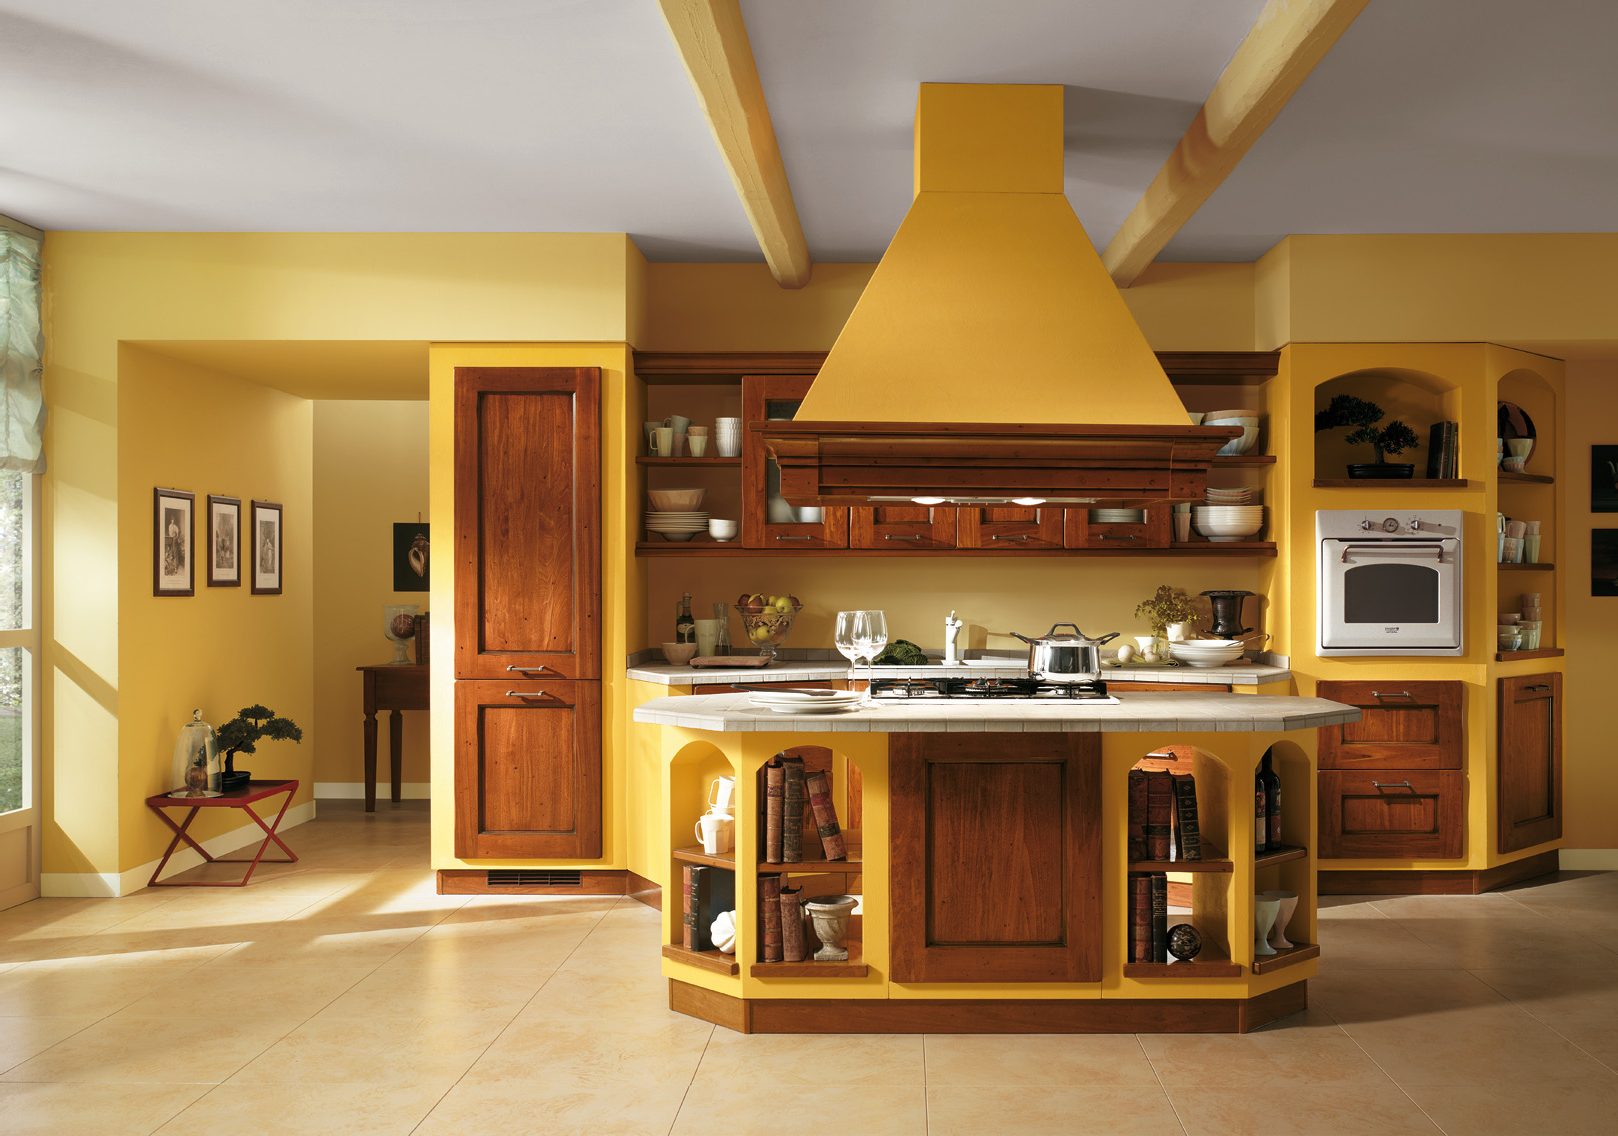 Featured Image of Yellow Italian Kitchen Color Schemes